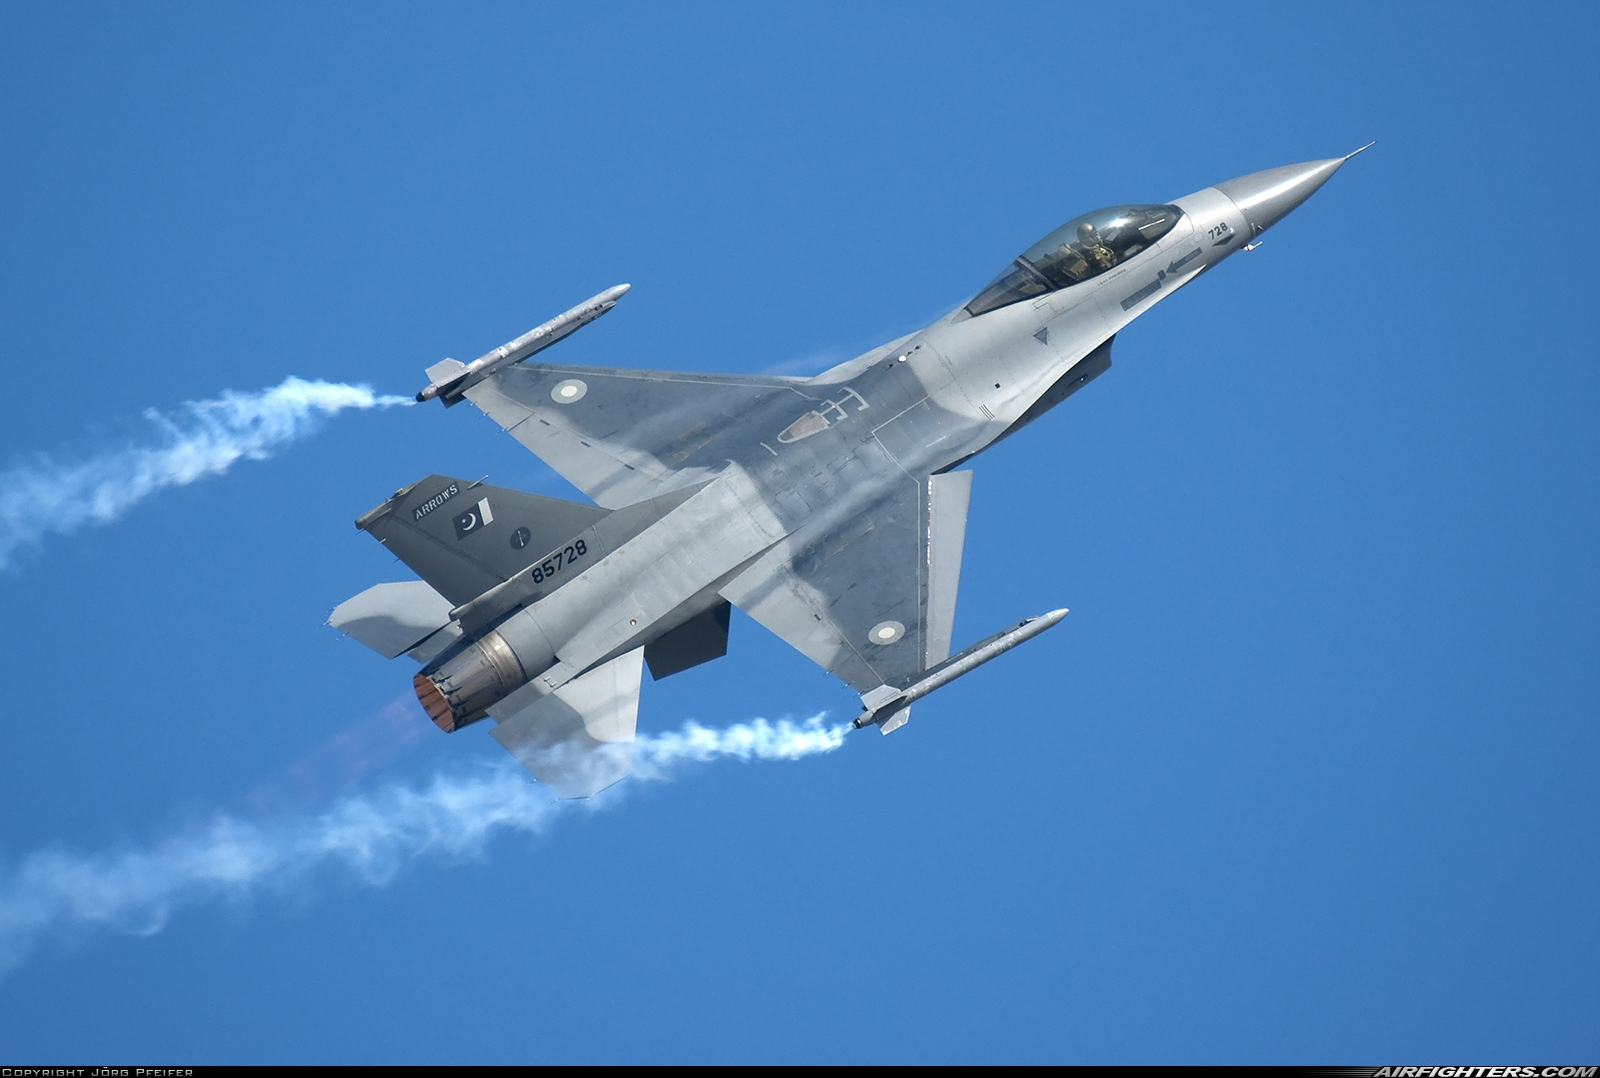 wallpaper jf 17 thunder